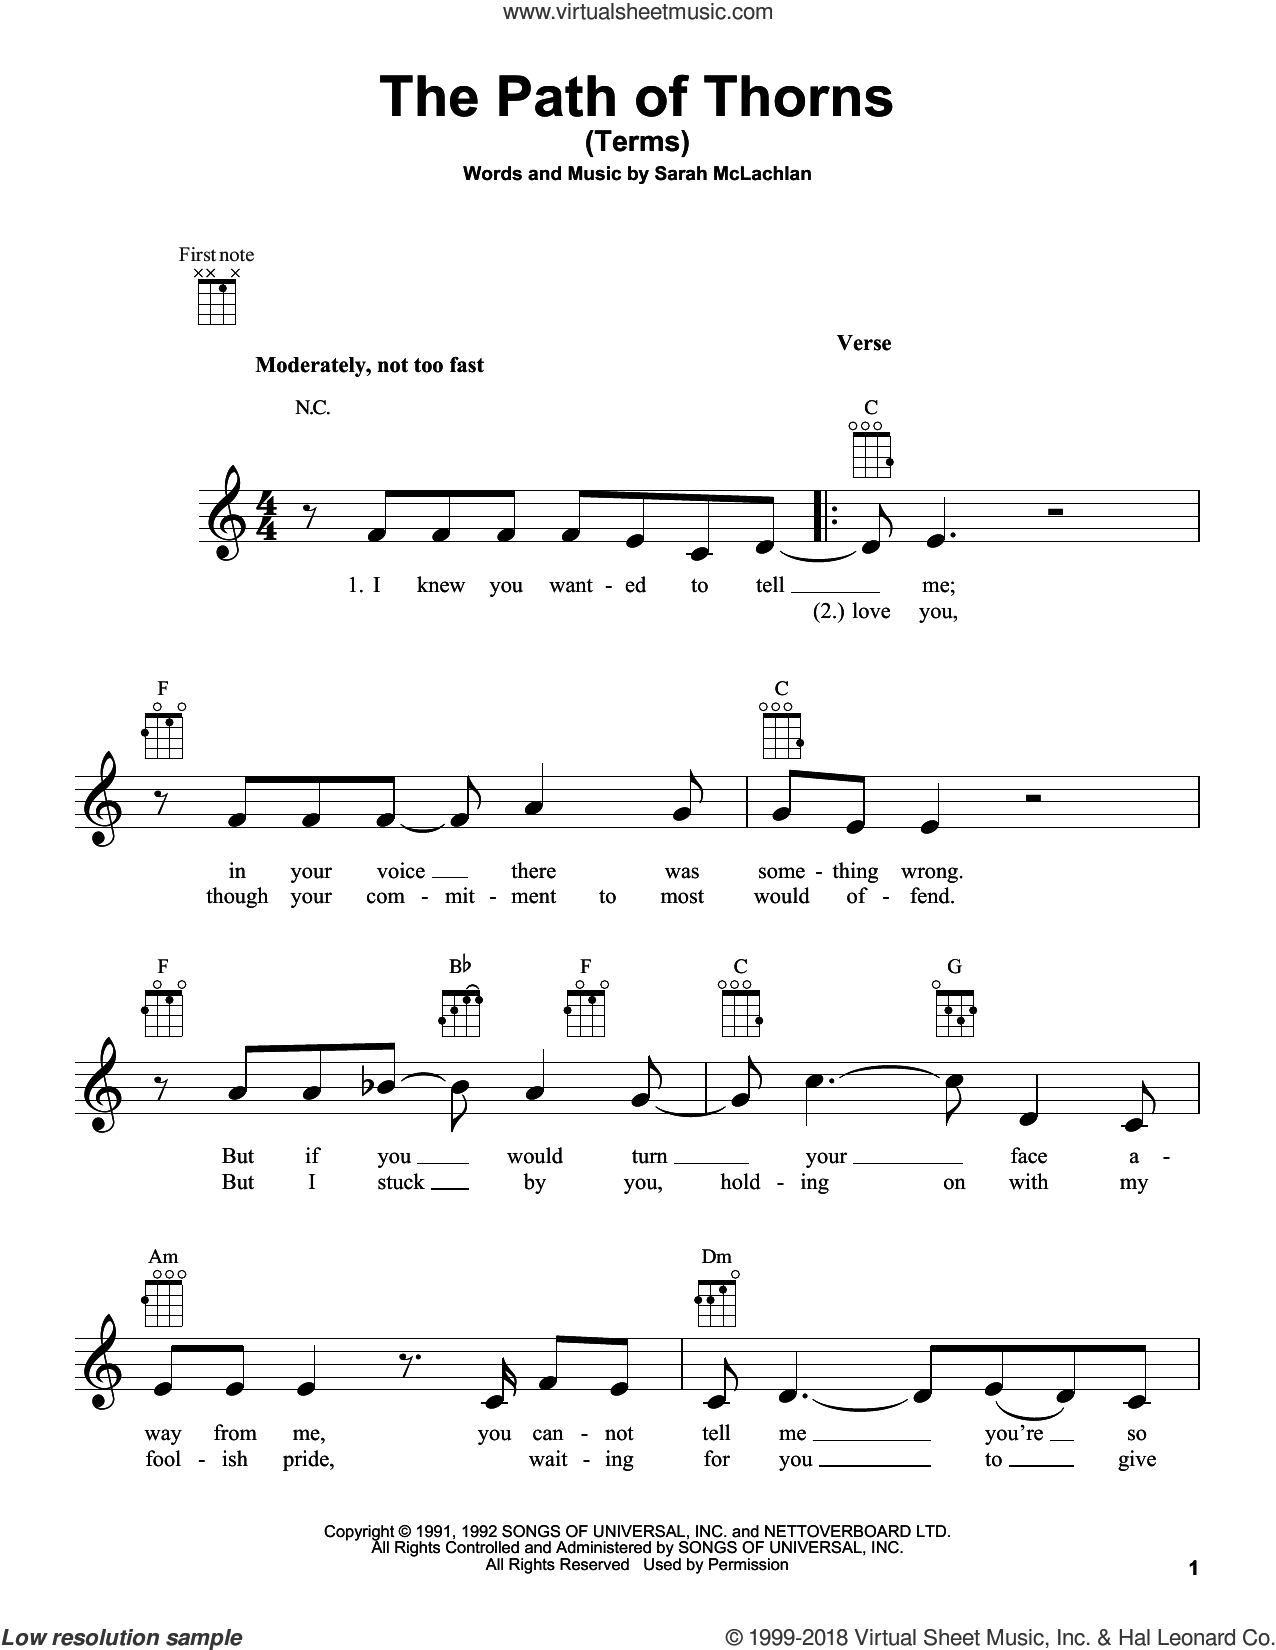 The Path Of Thorns (Terms) sheet music for ukulele by Sarah McLachlan, intermediate